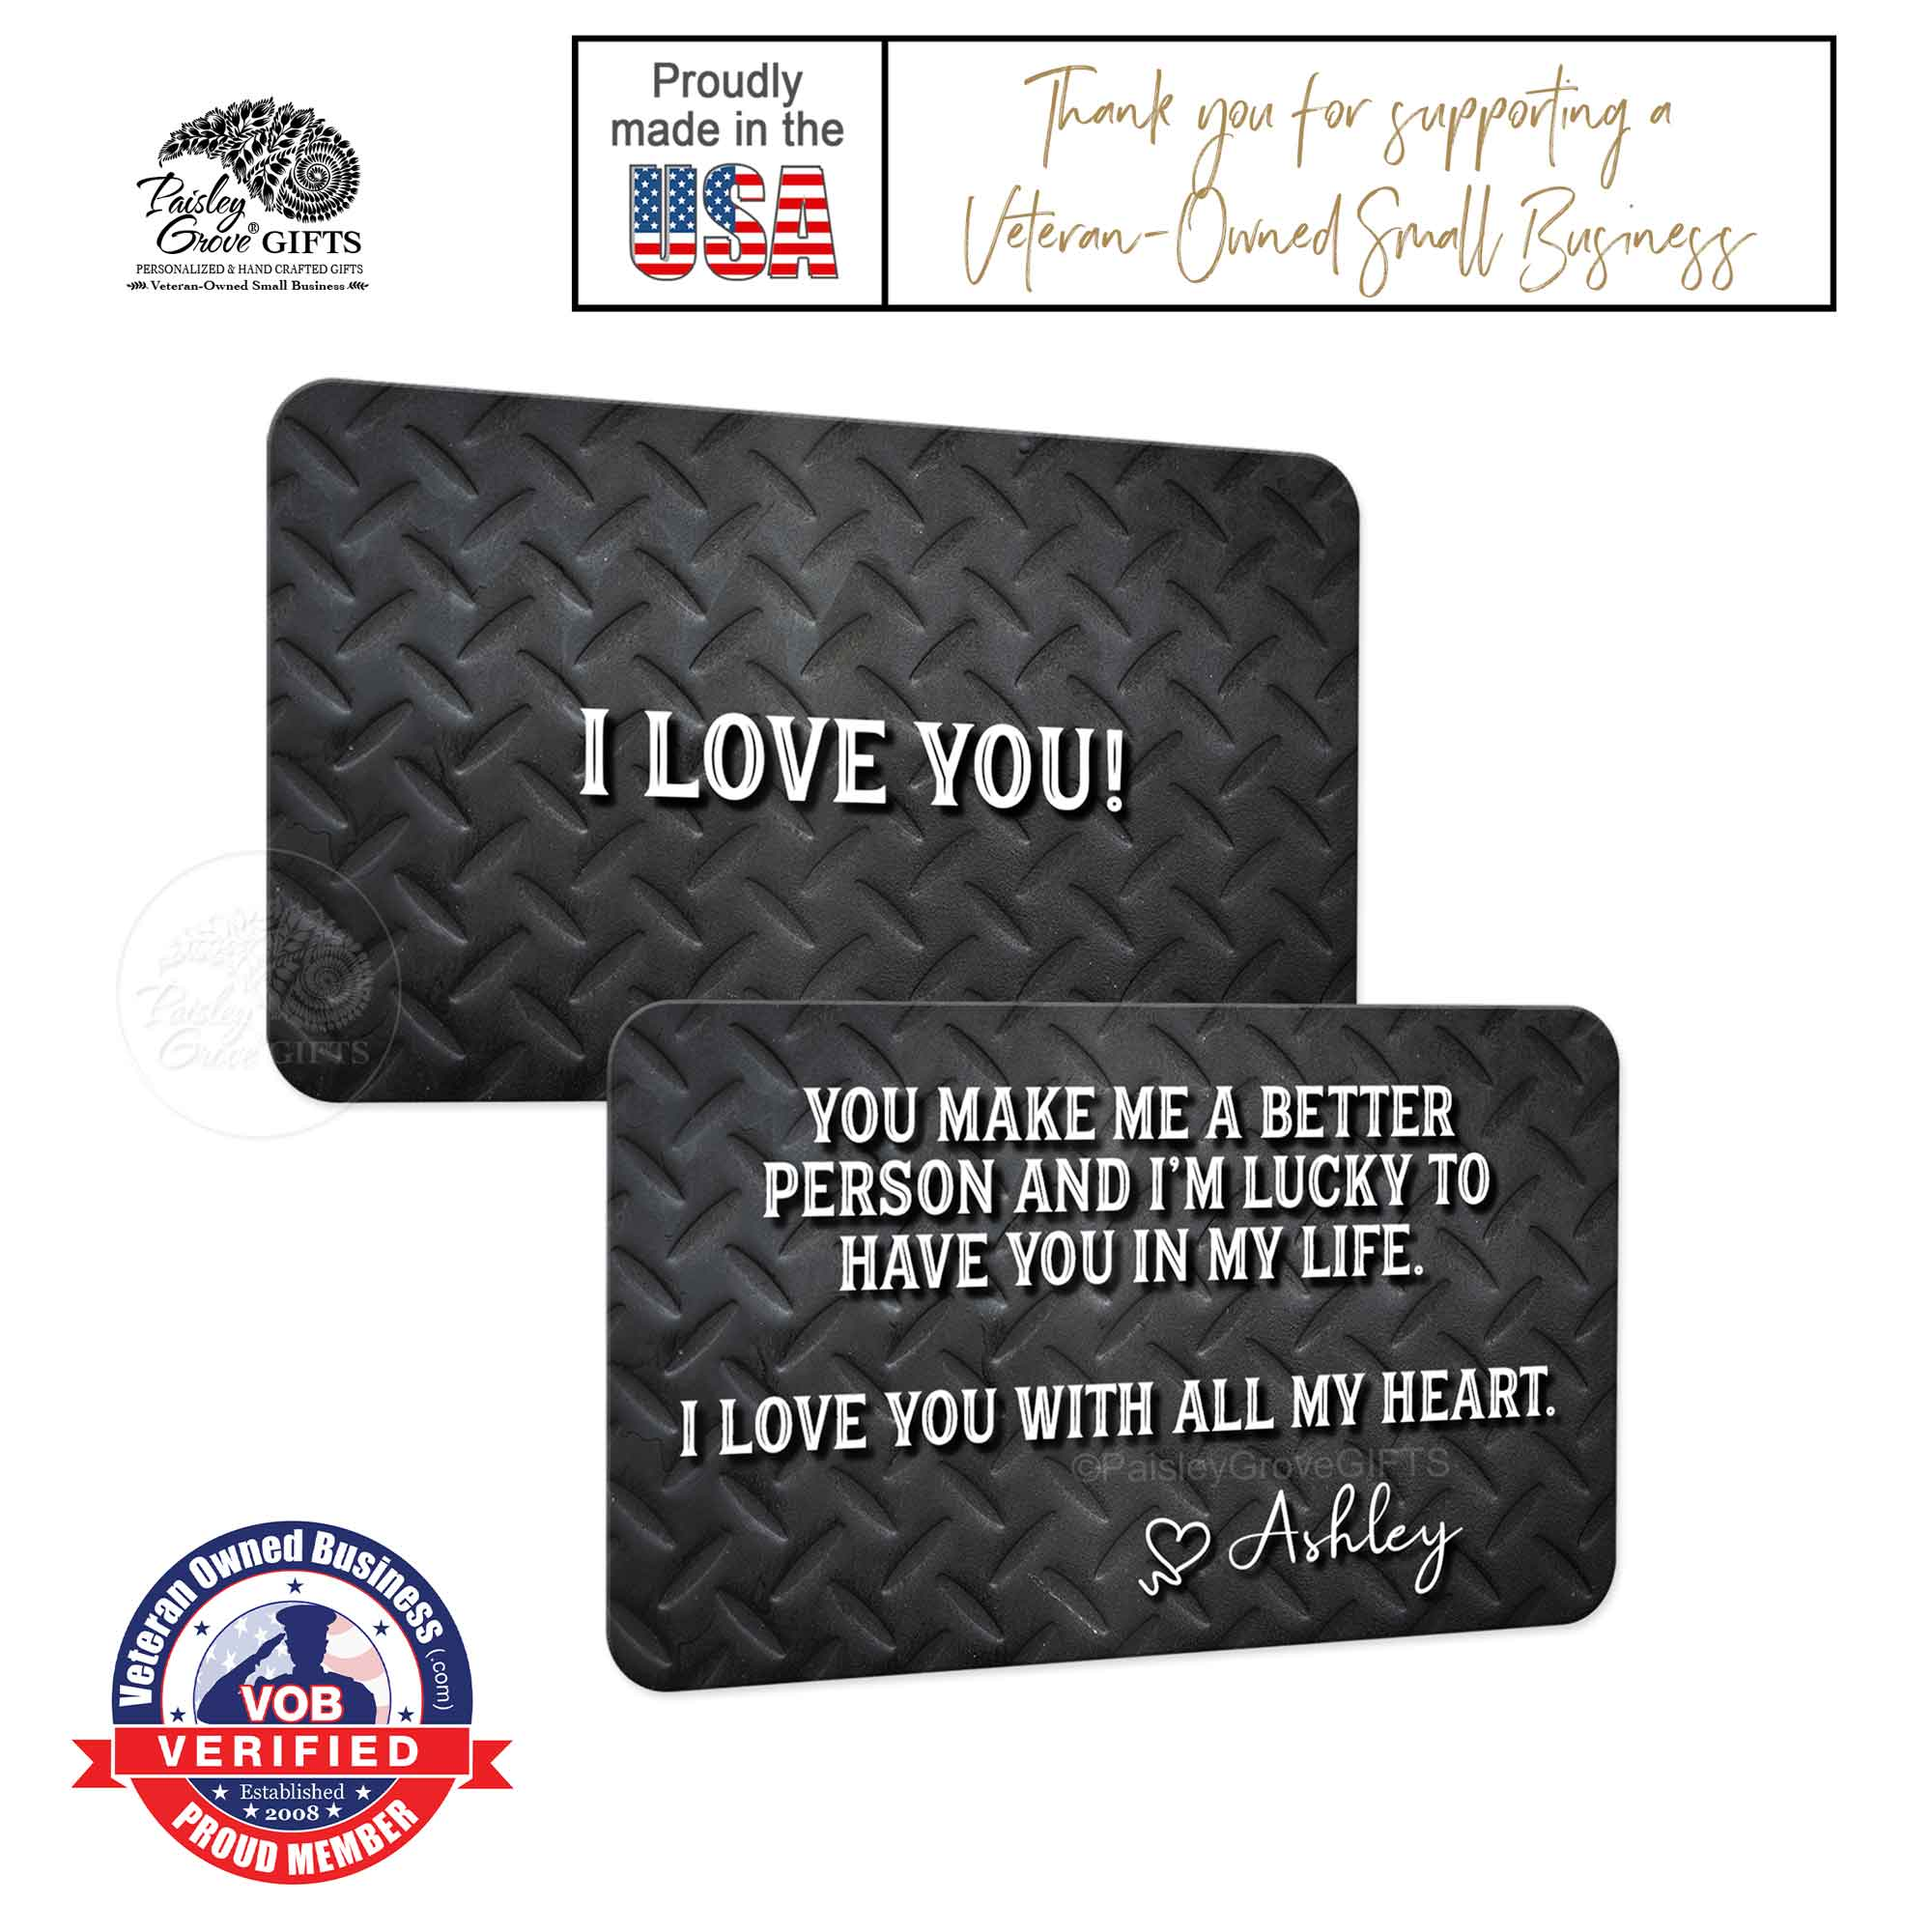 Copyright PaisleyGroveGIFTS S600a2 Romantic Gift for Husband is made in the usa by a Veteran Owned Small Business